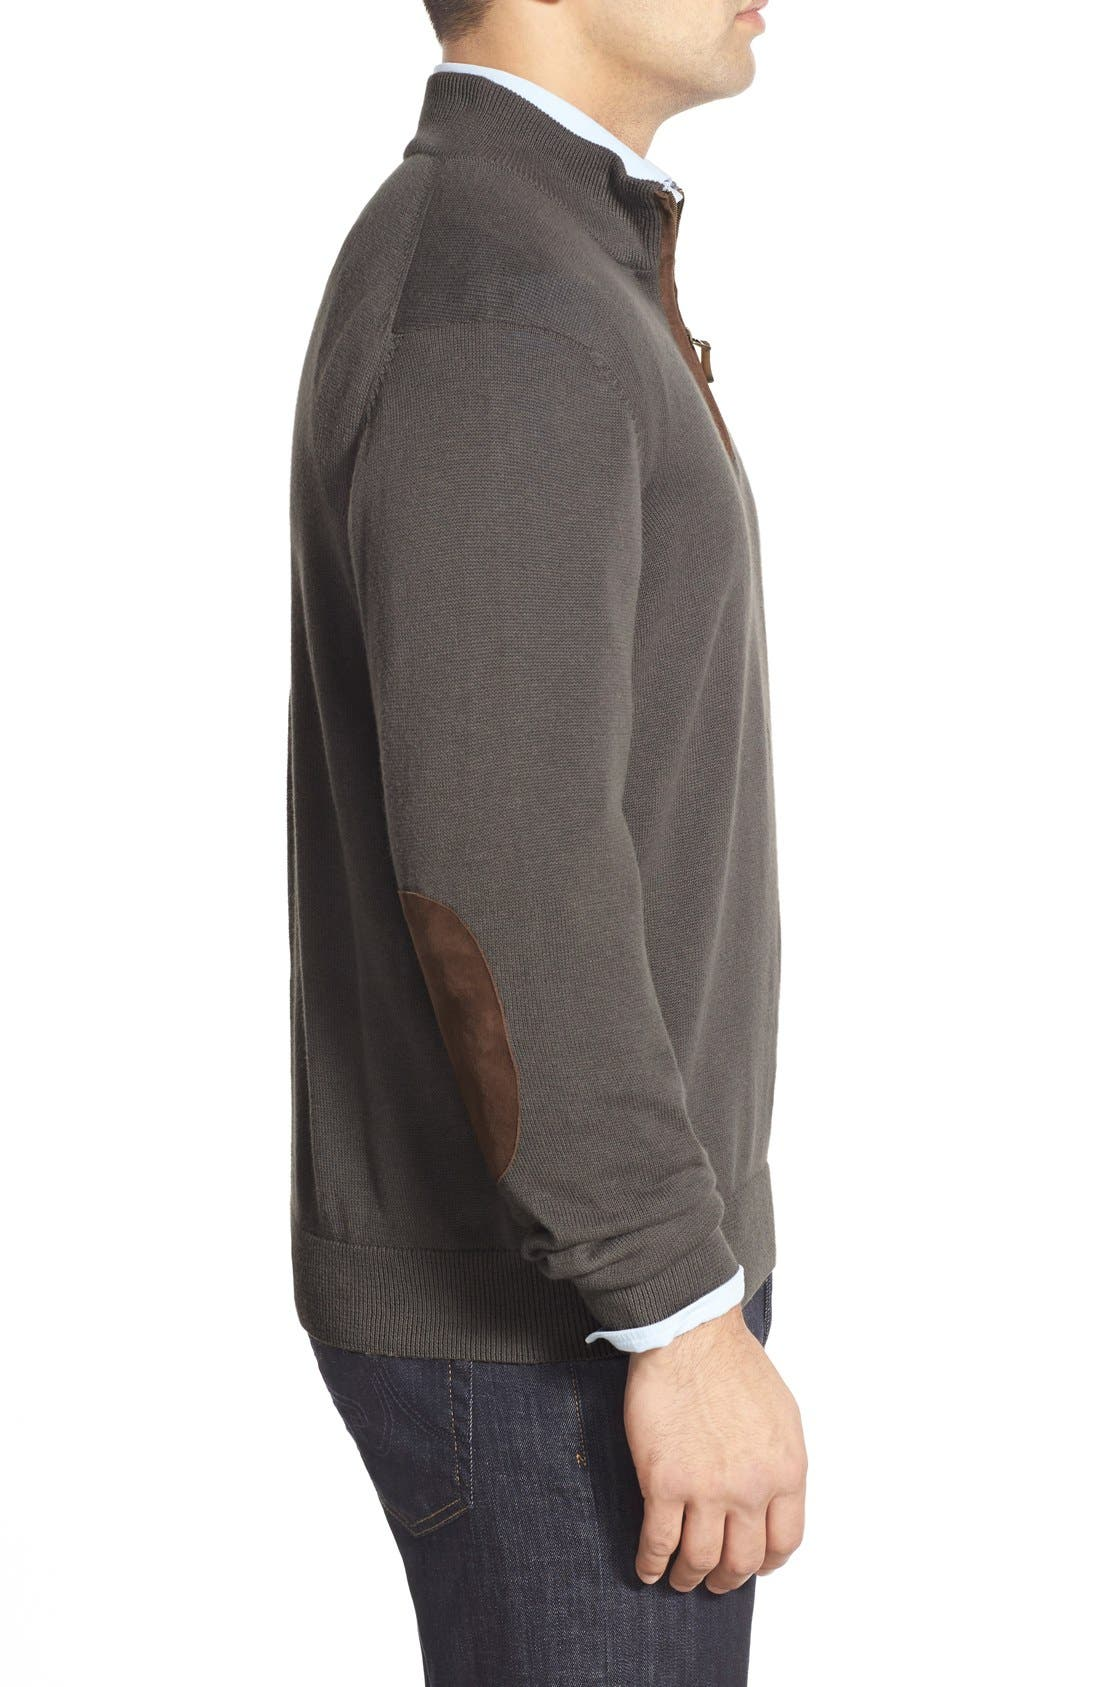 'Round Hill' Quarter Zip Sweater with Suede Elbow Patches,                             Alternate thumbnail 5, color,                             025